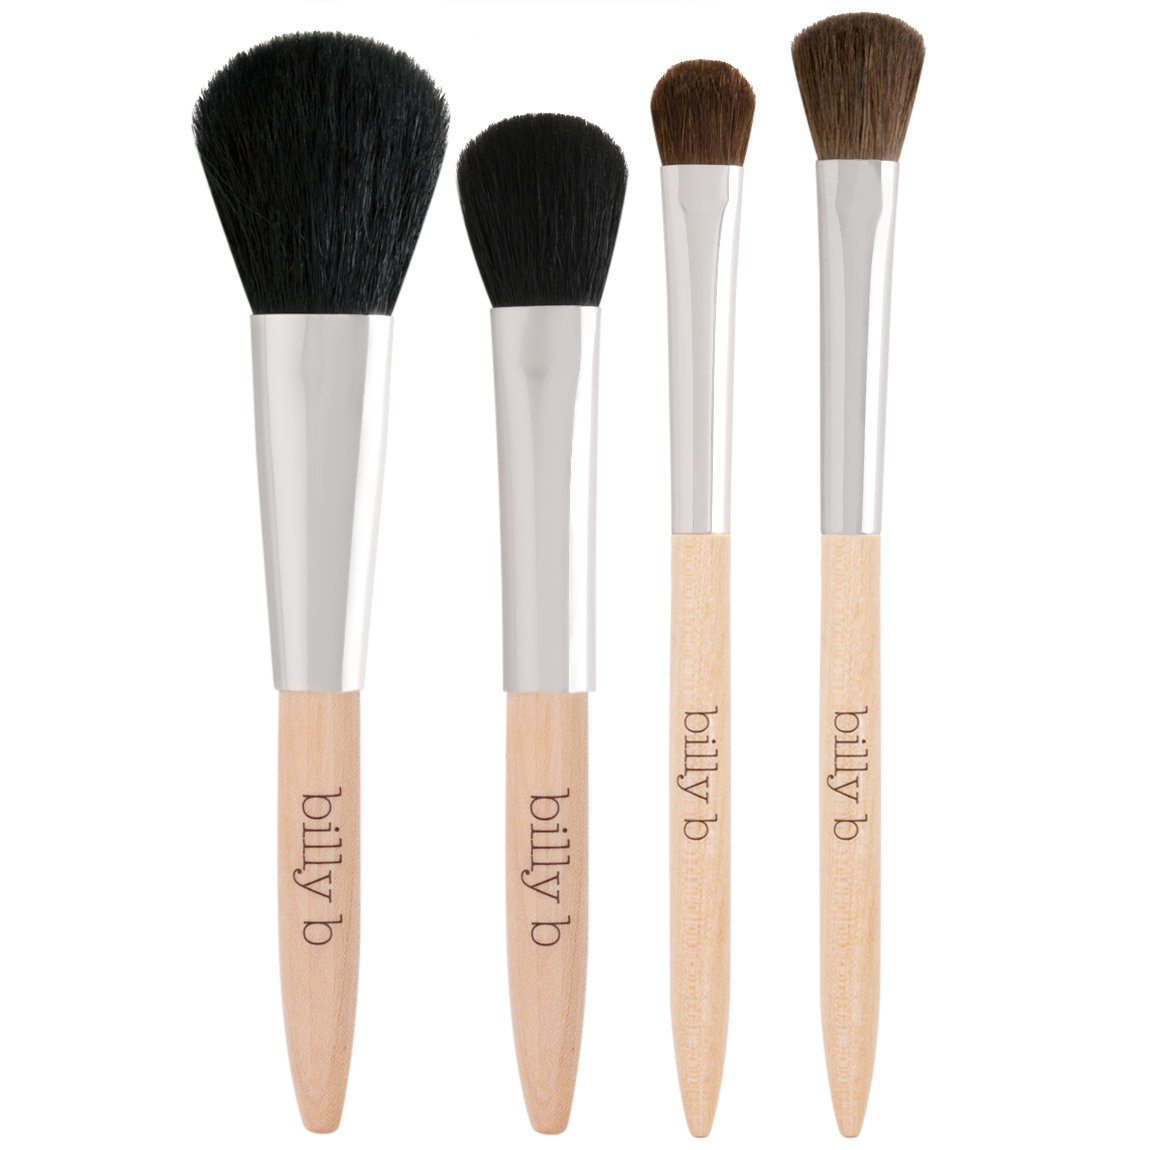 Billy B Contour & Blush Brush Set product swatch.